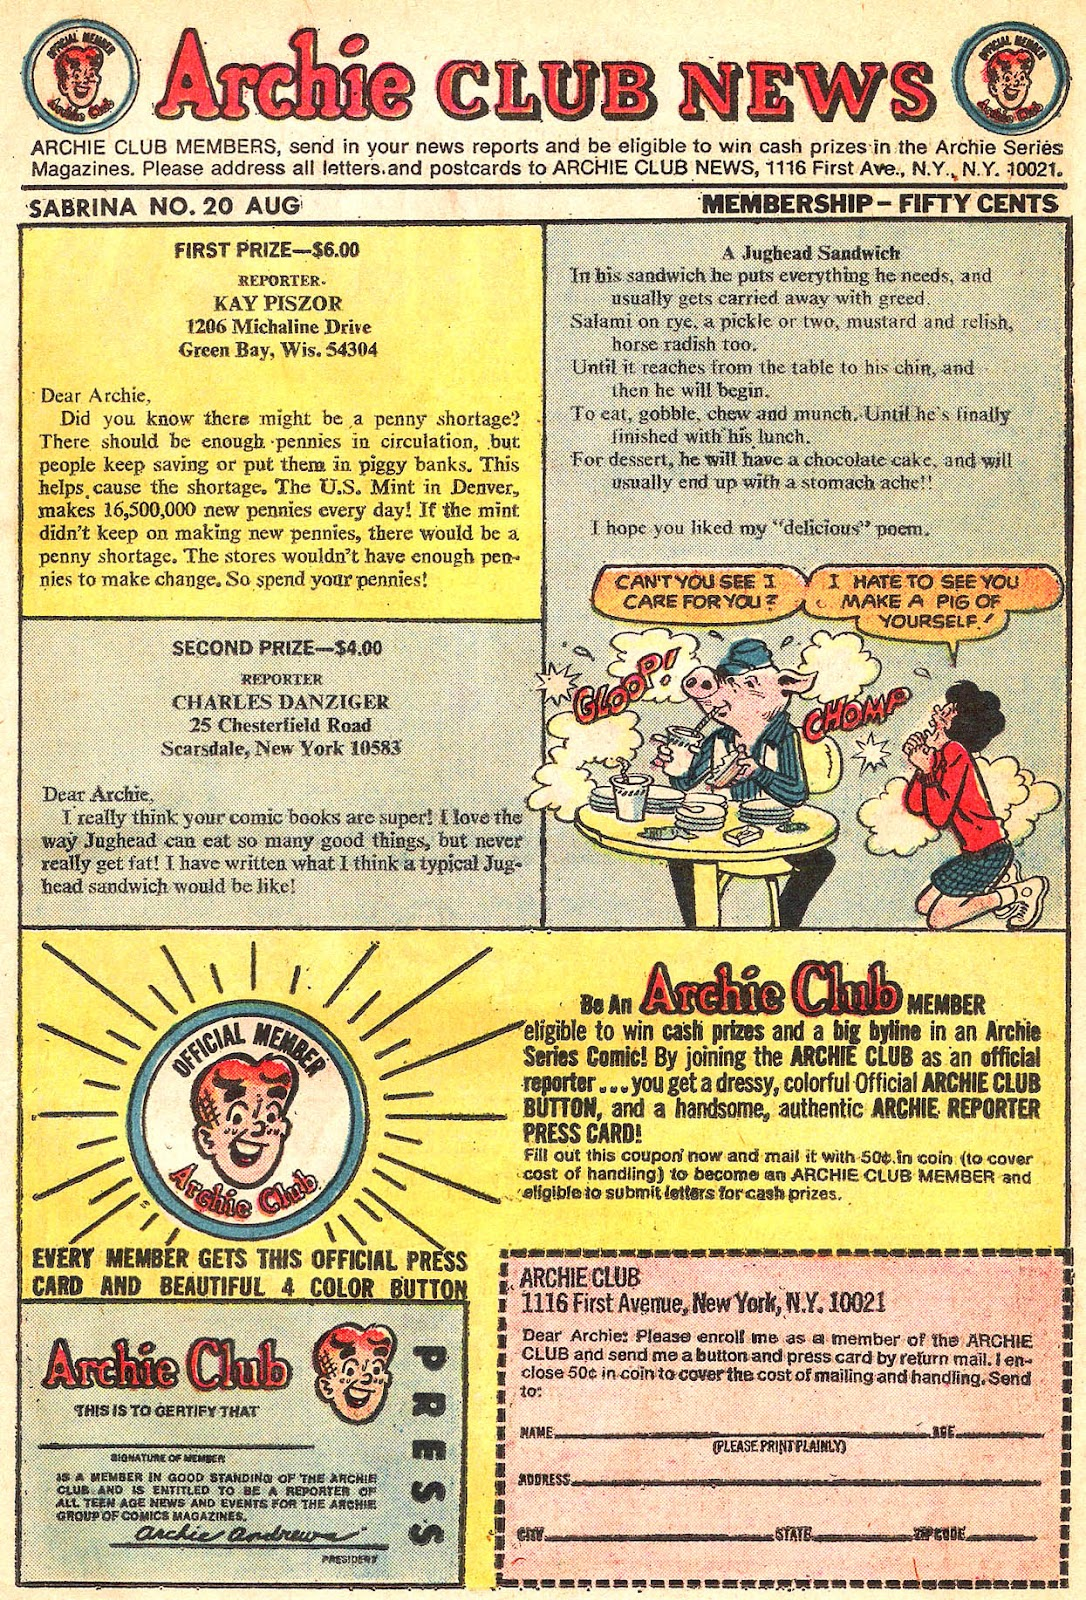 Sabrina The Teenage Witch (1971) Issue #20 #20 - English 11